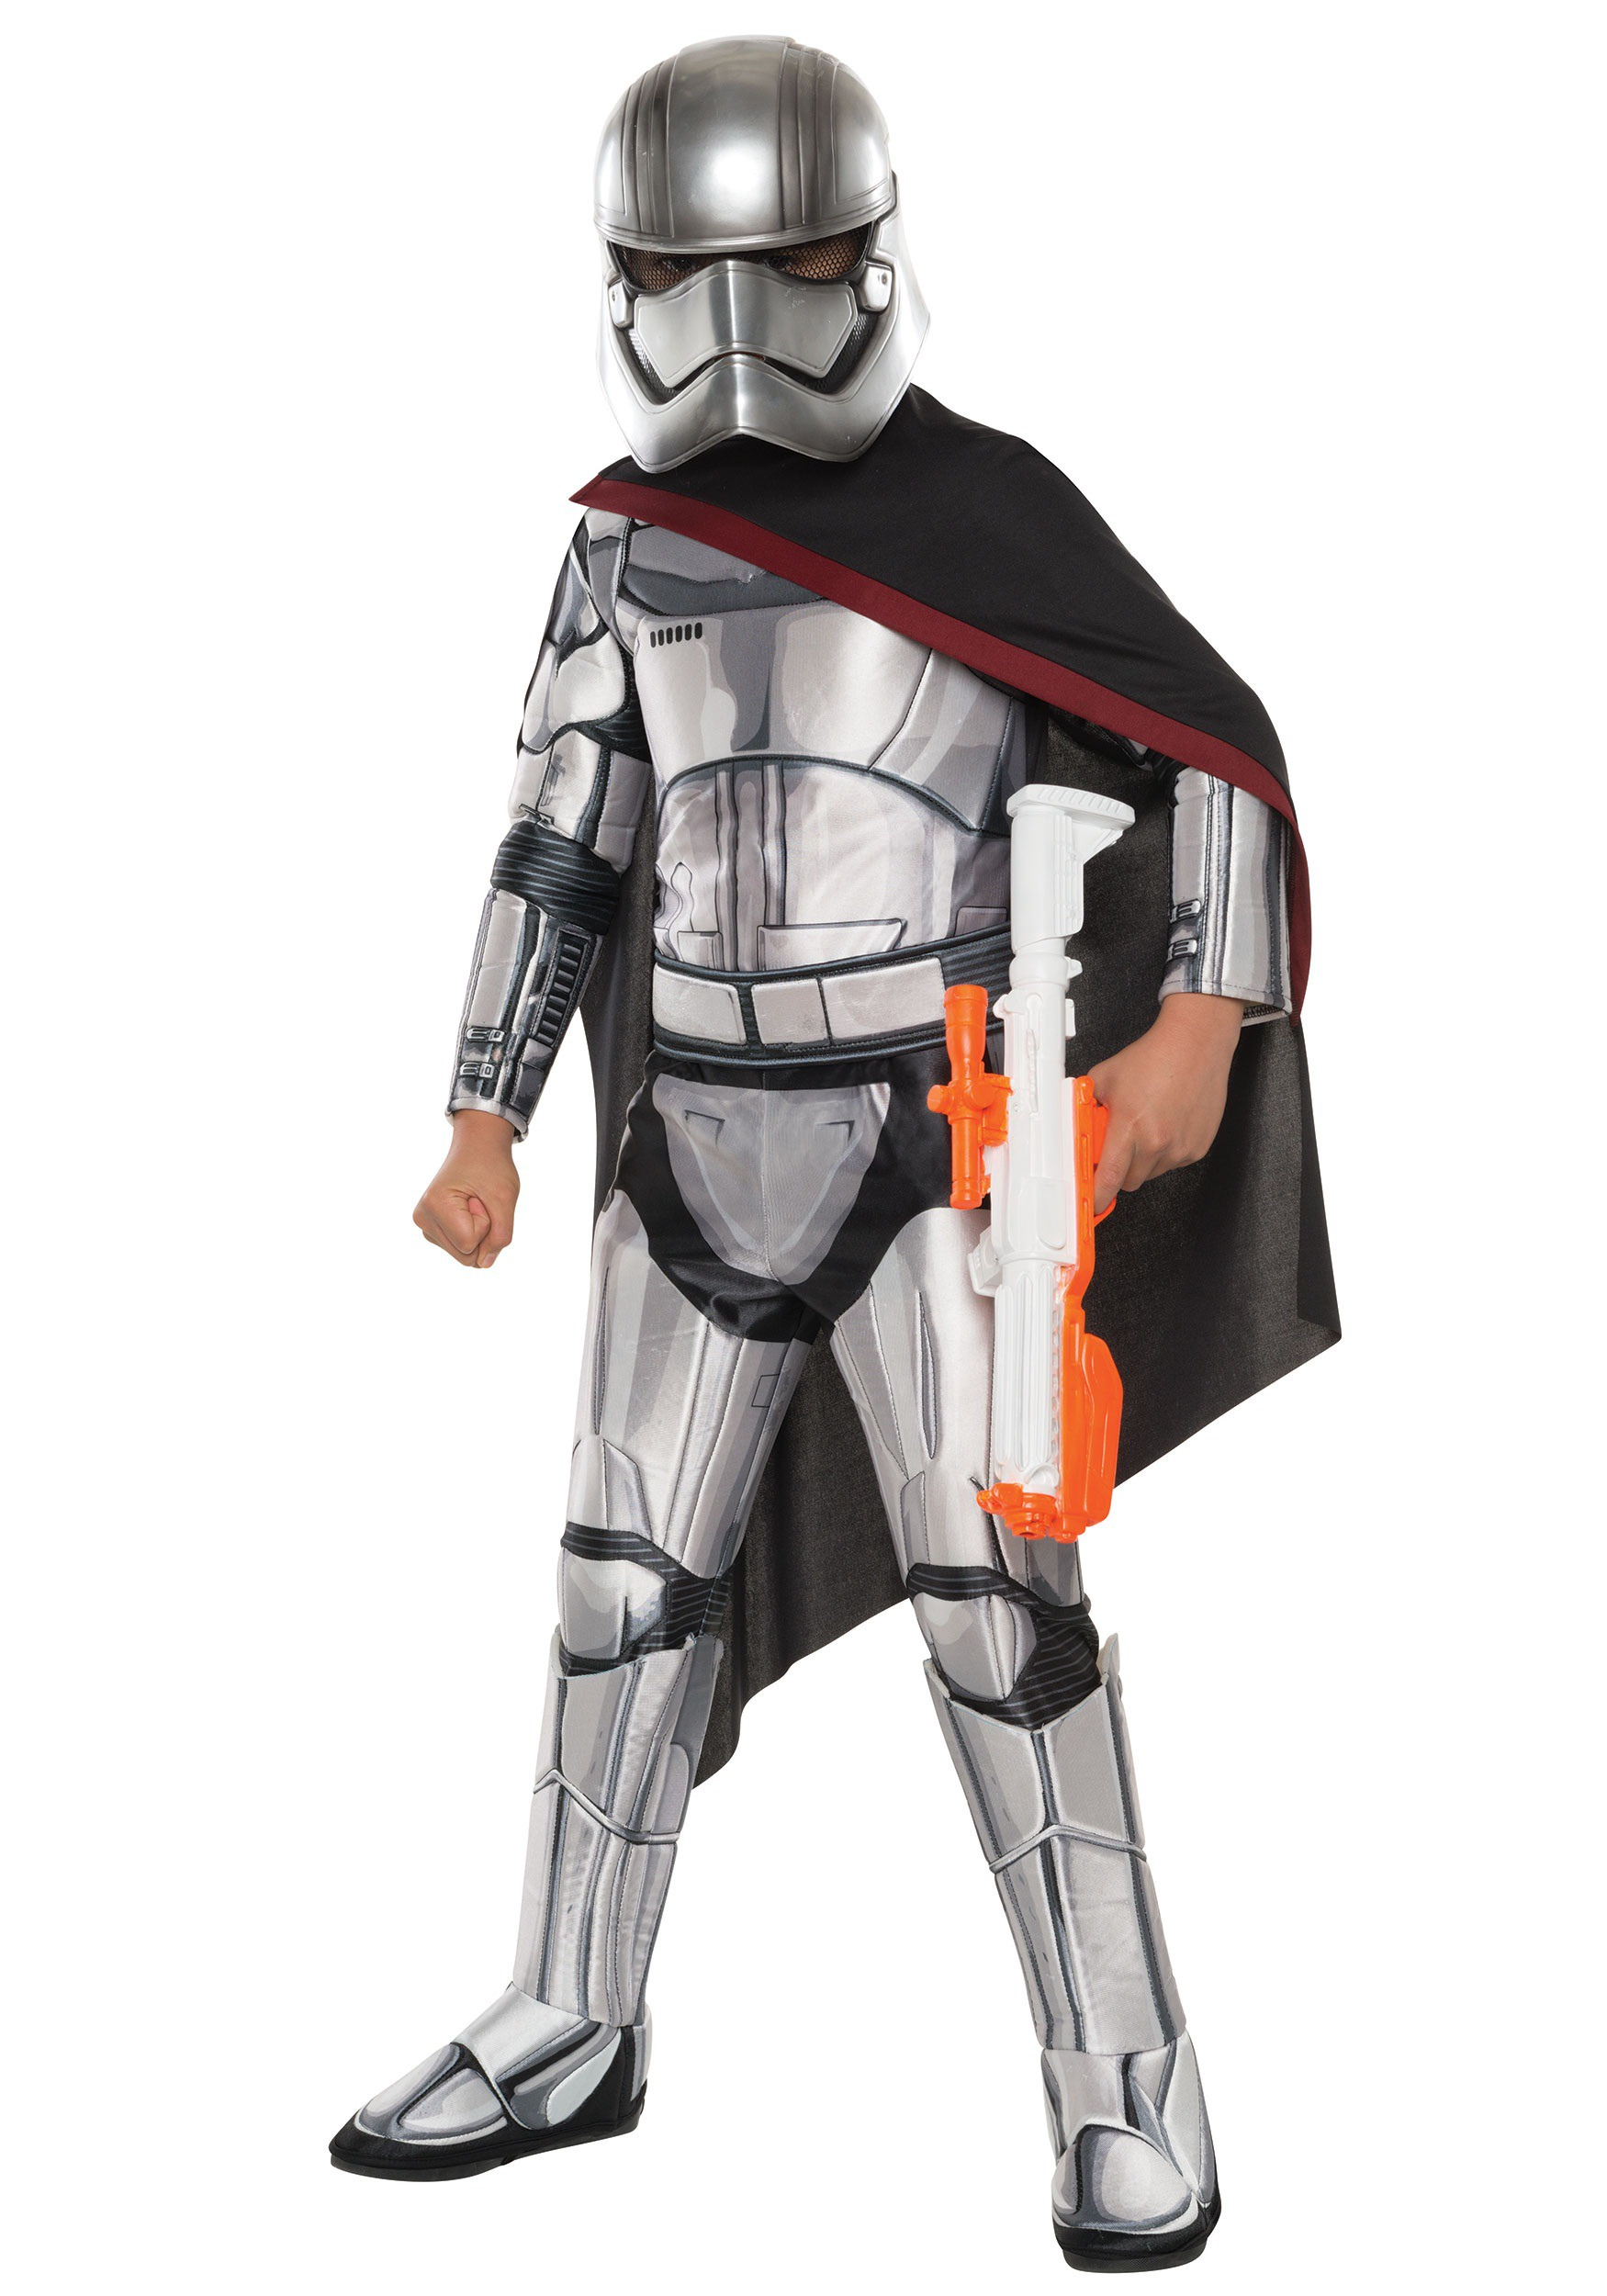 Child Deluxe Star Wars Force Awakens Captain Phasma Costume RU620092